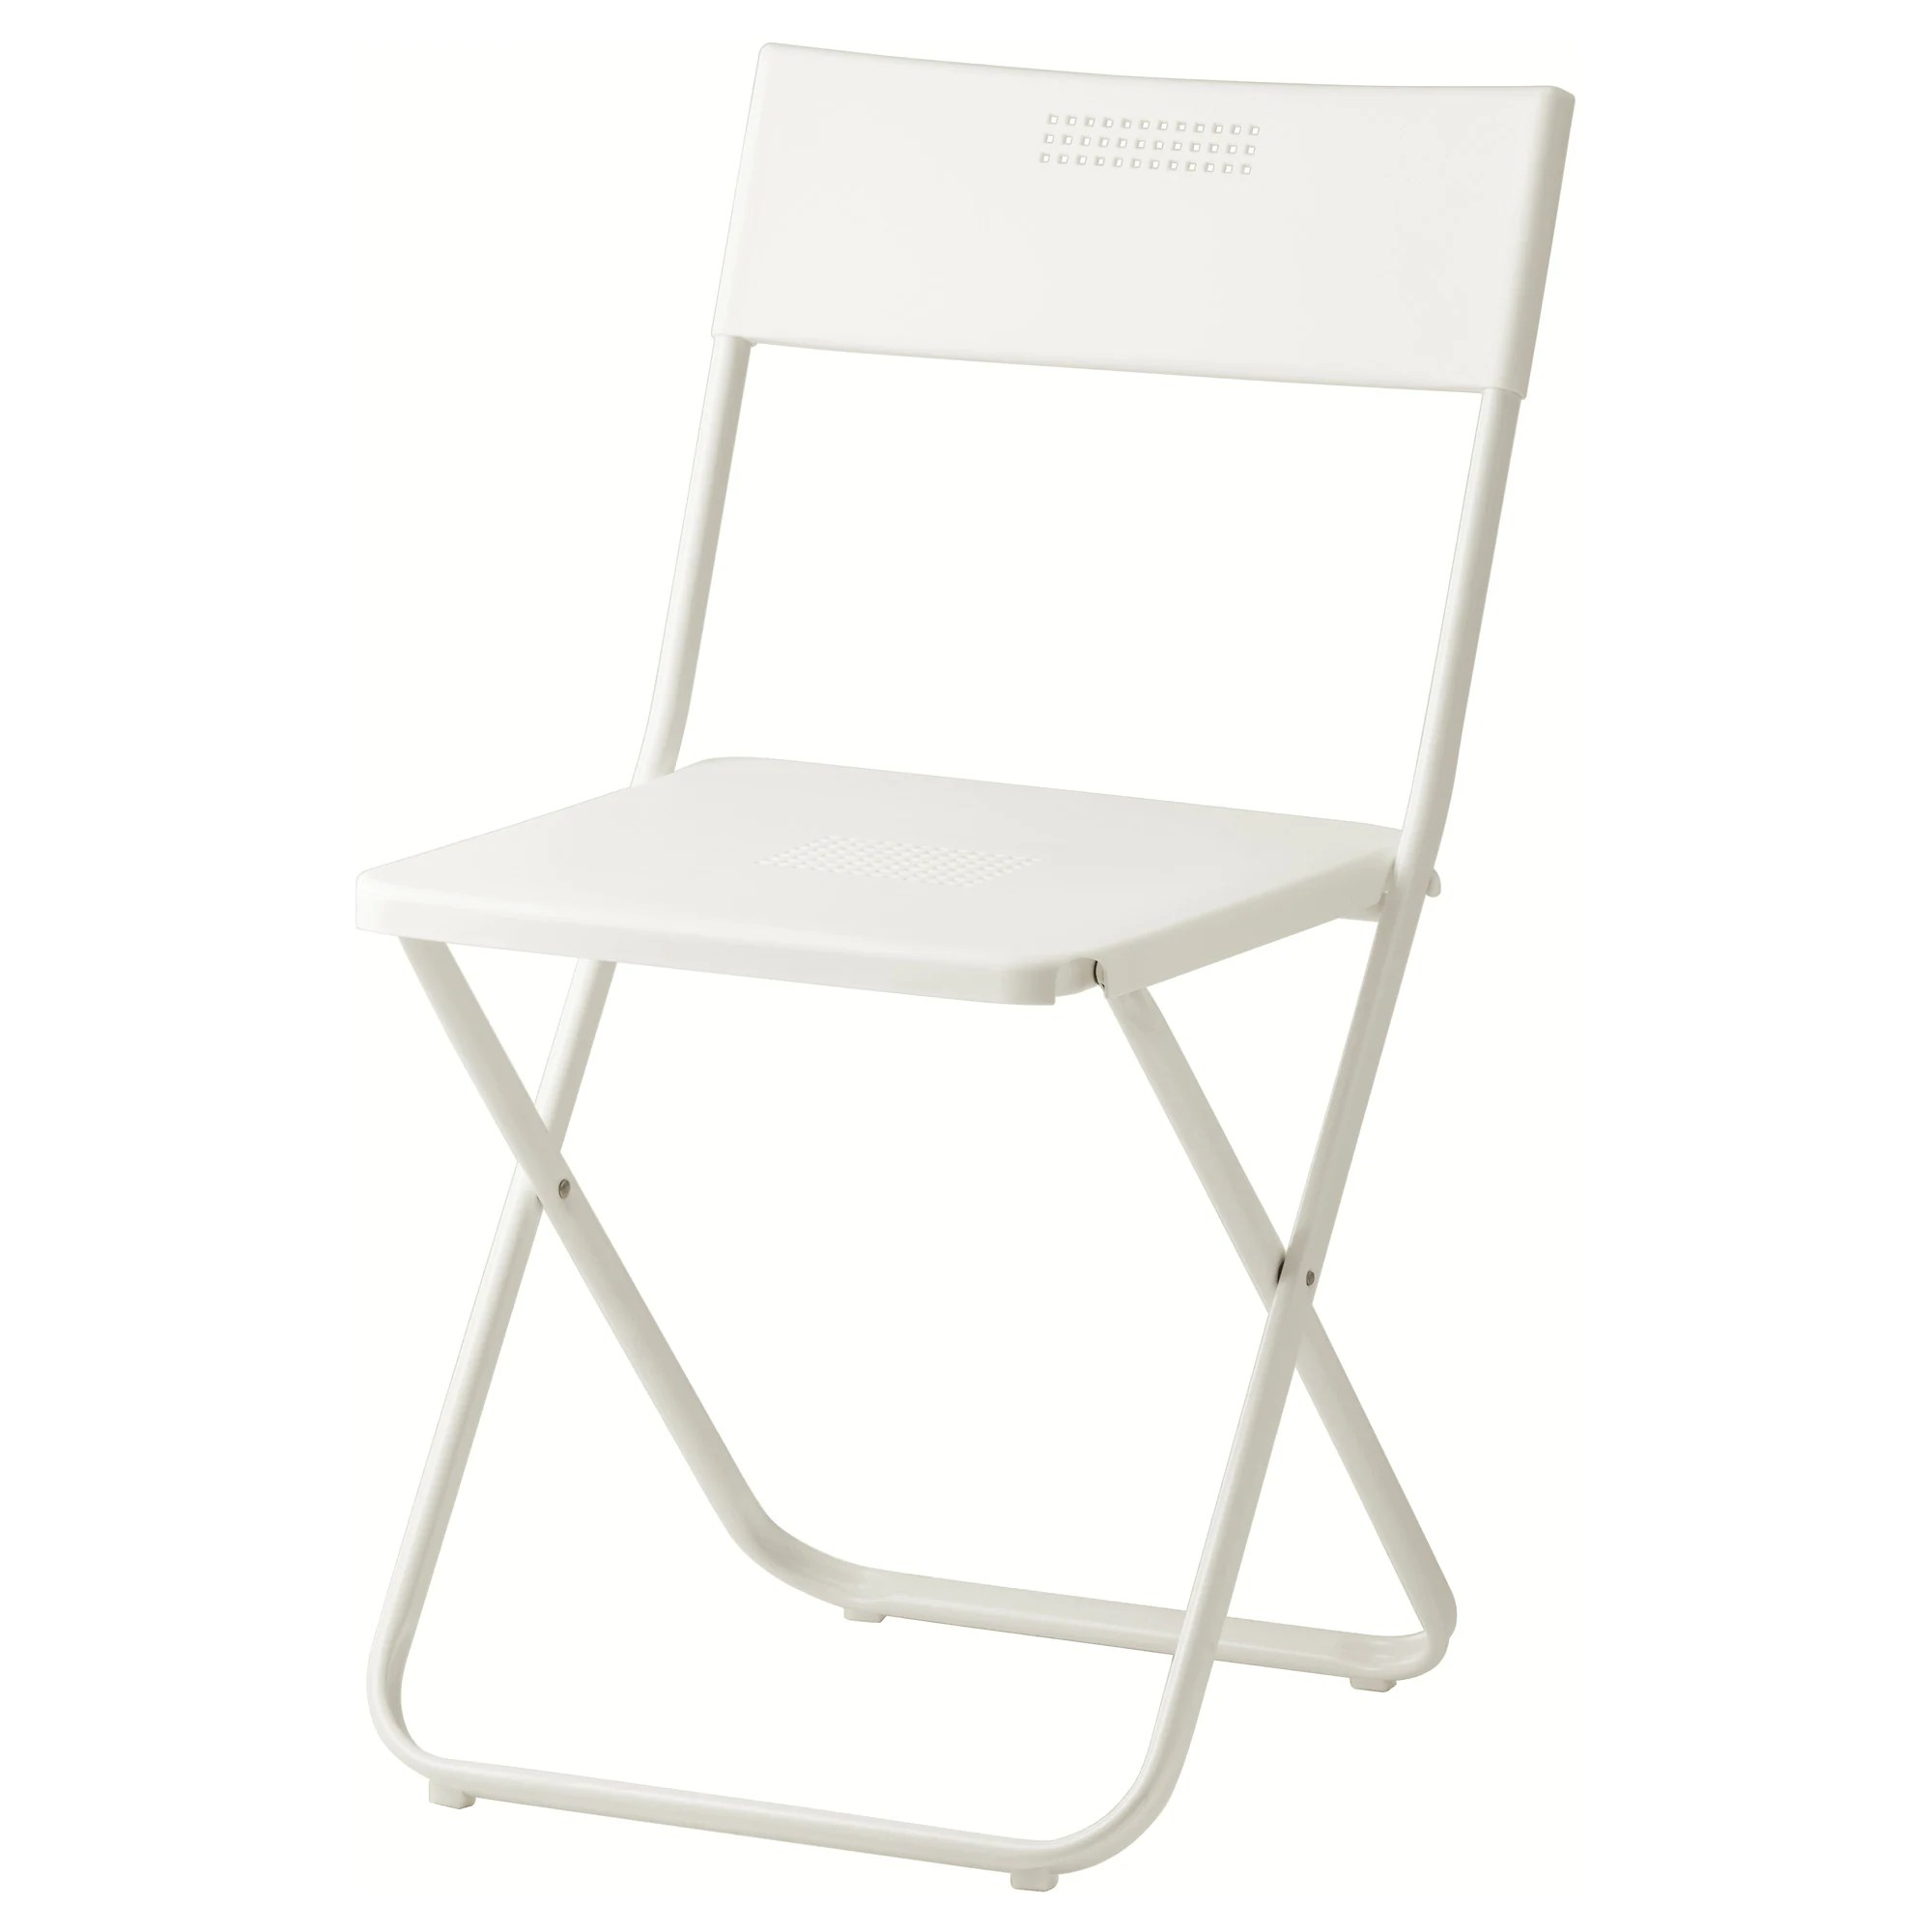 Small Fold Up Chair Fejan Chair Outdoor White Foldable White